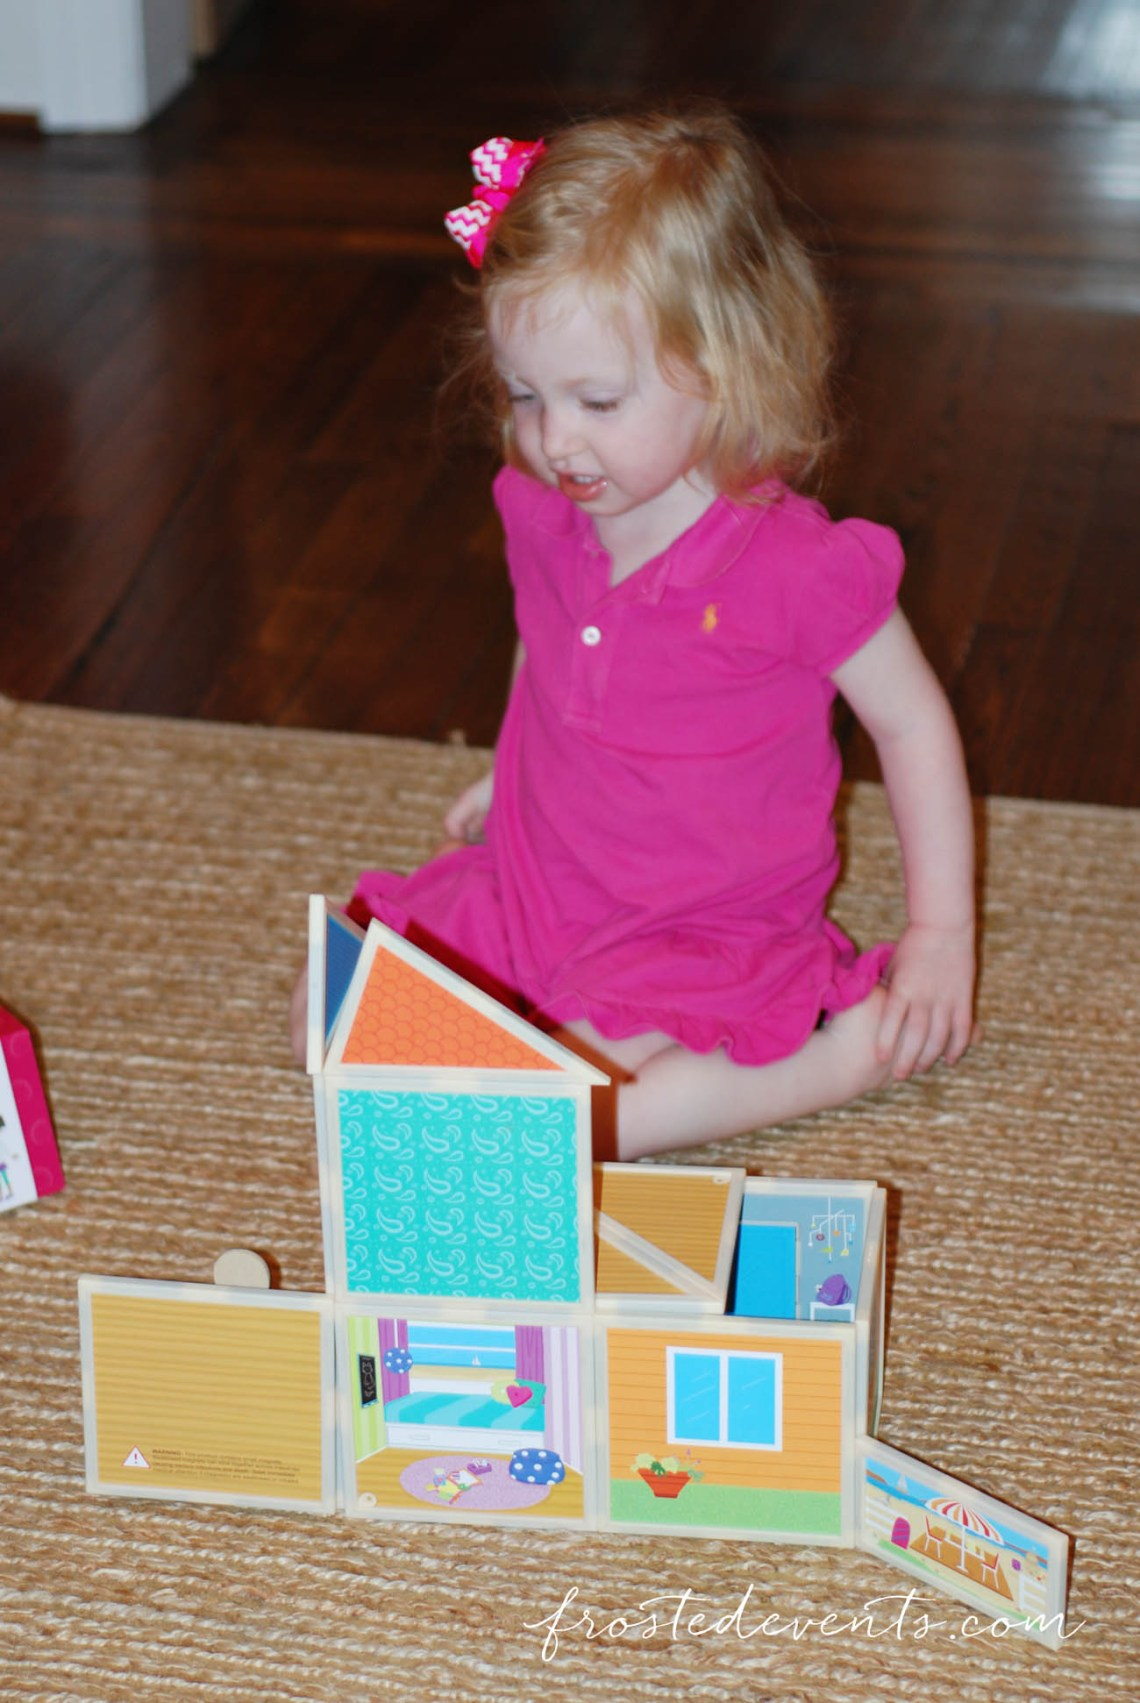 Cool Toy Review - Malias Beach House by Build and Imagine - Gifts for Girls